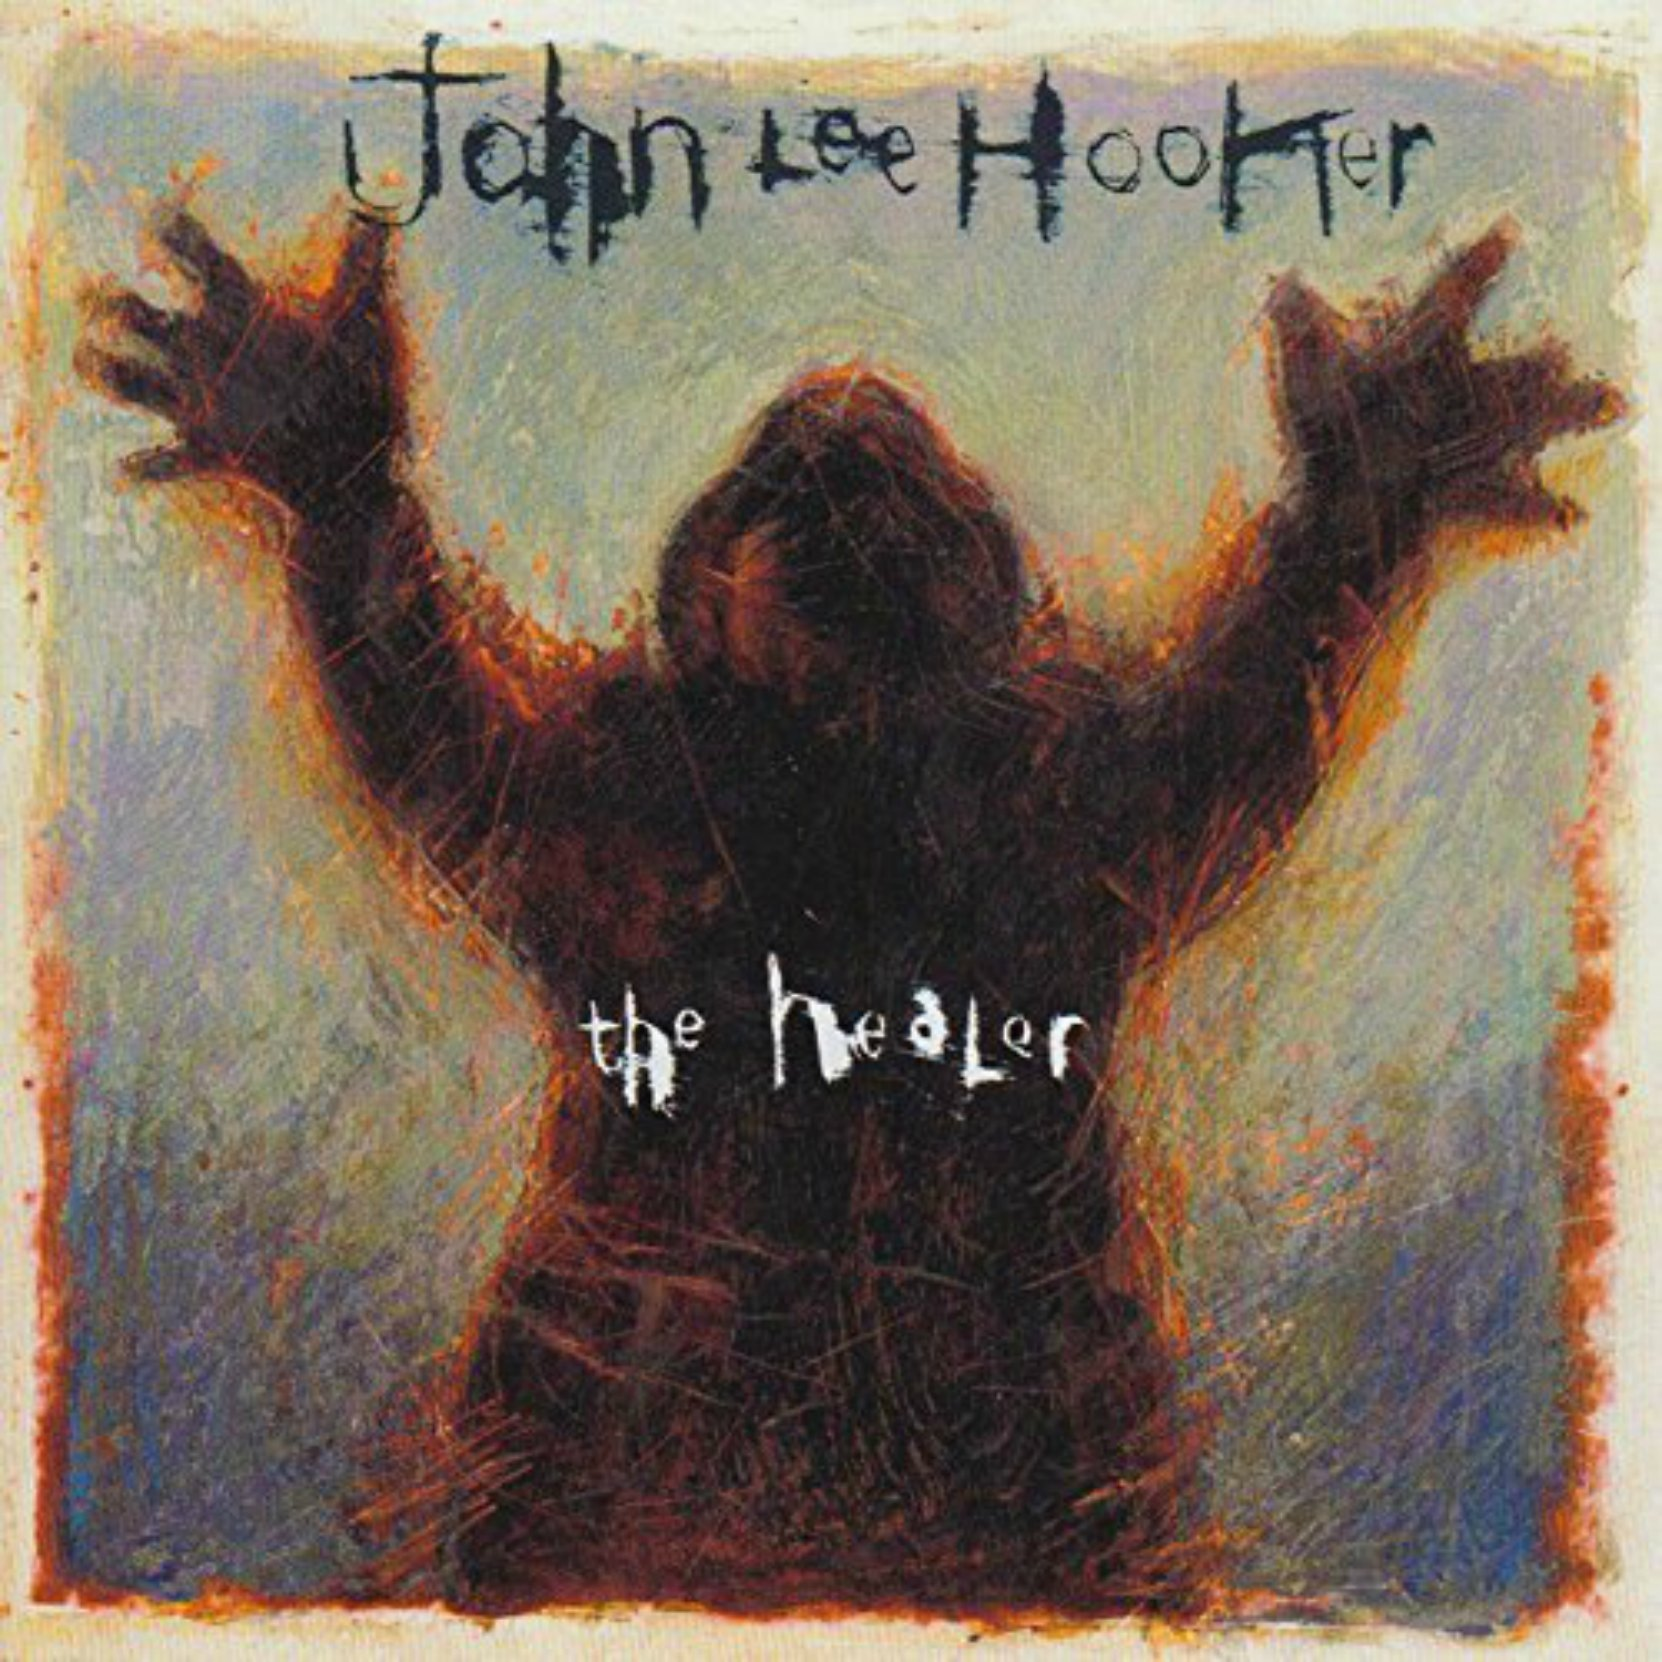 CD cover, John Lee Hooker, The Healer, released in 1989